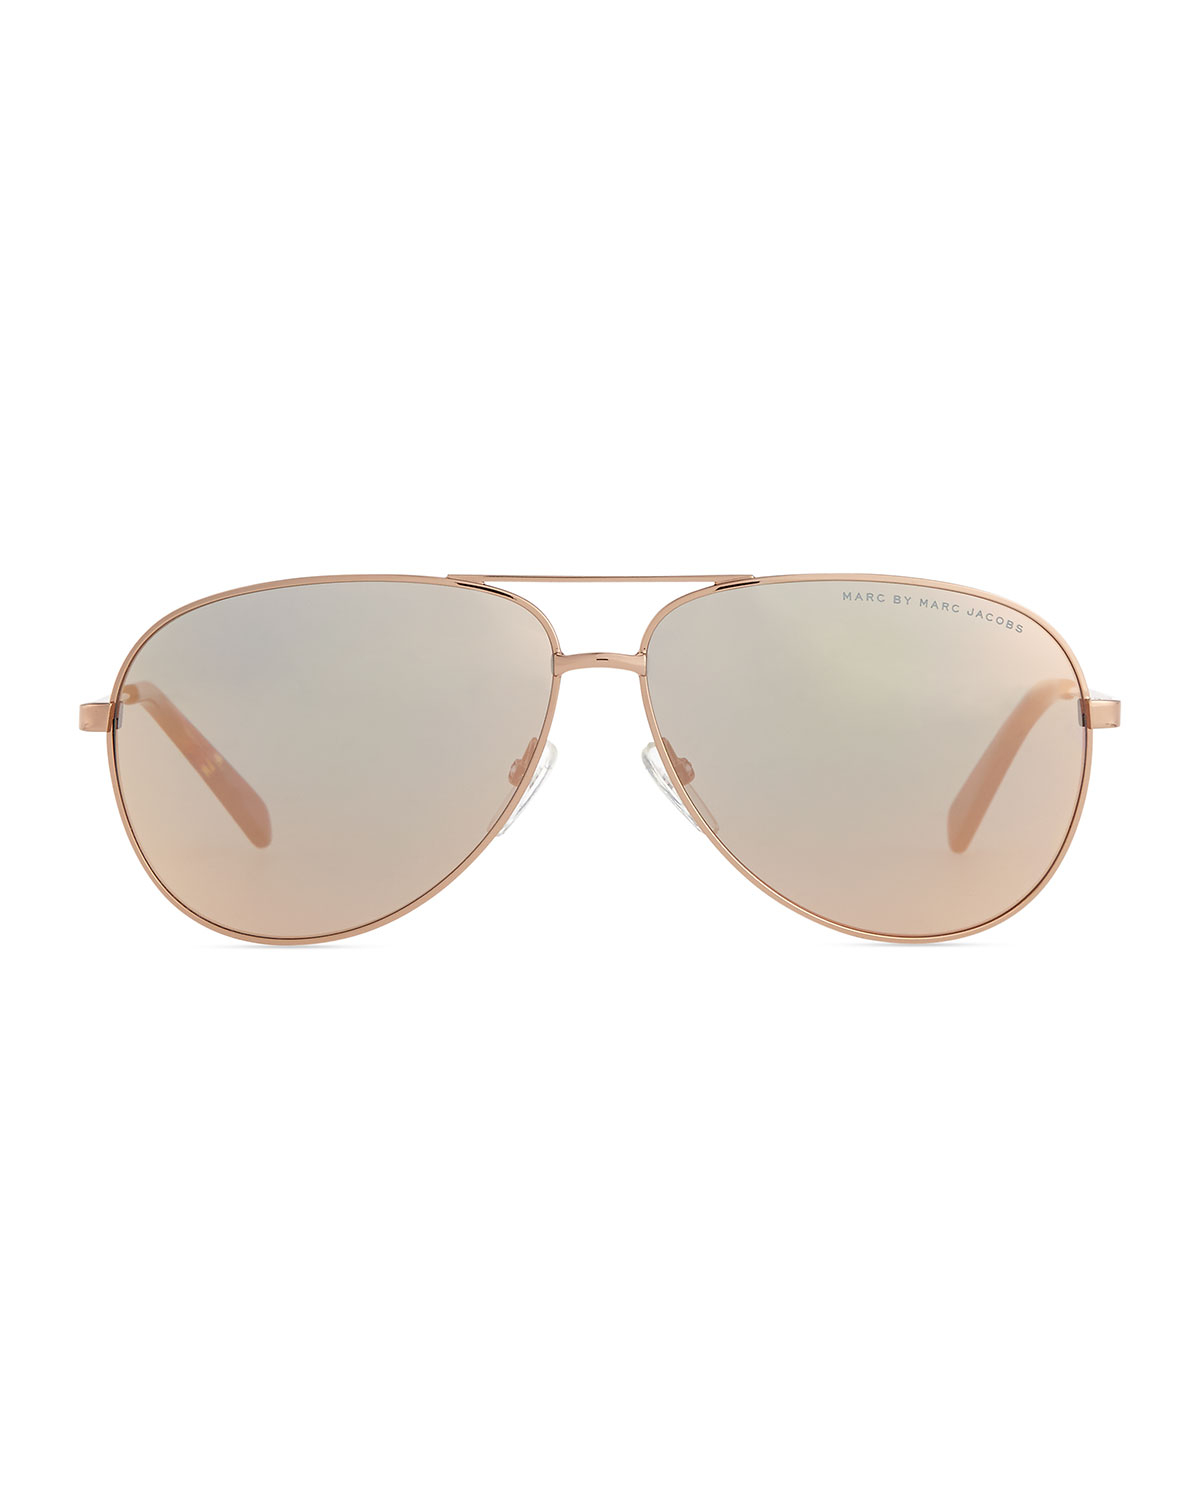 Marc by marc jacobs rose golden aviator sunglasses with for Mirror sunglasses